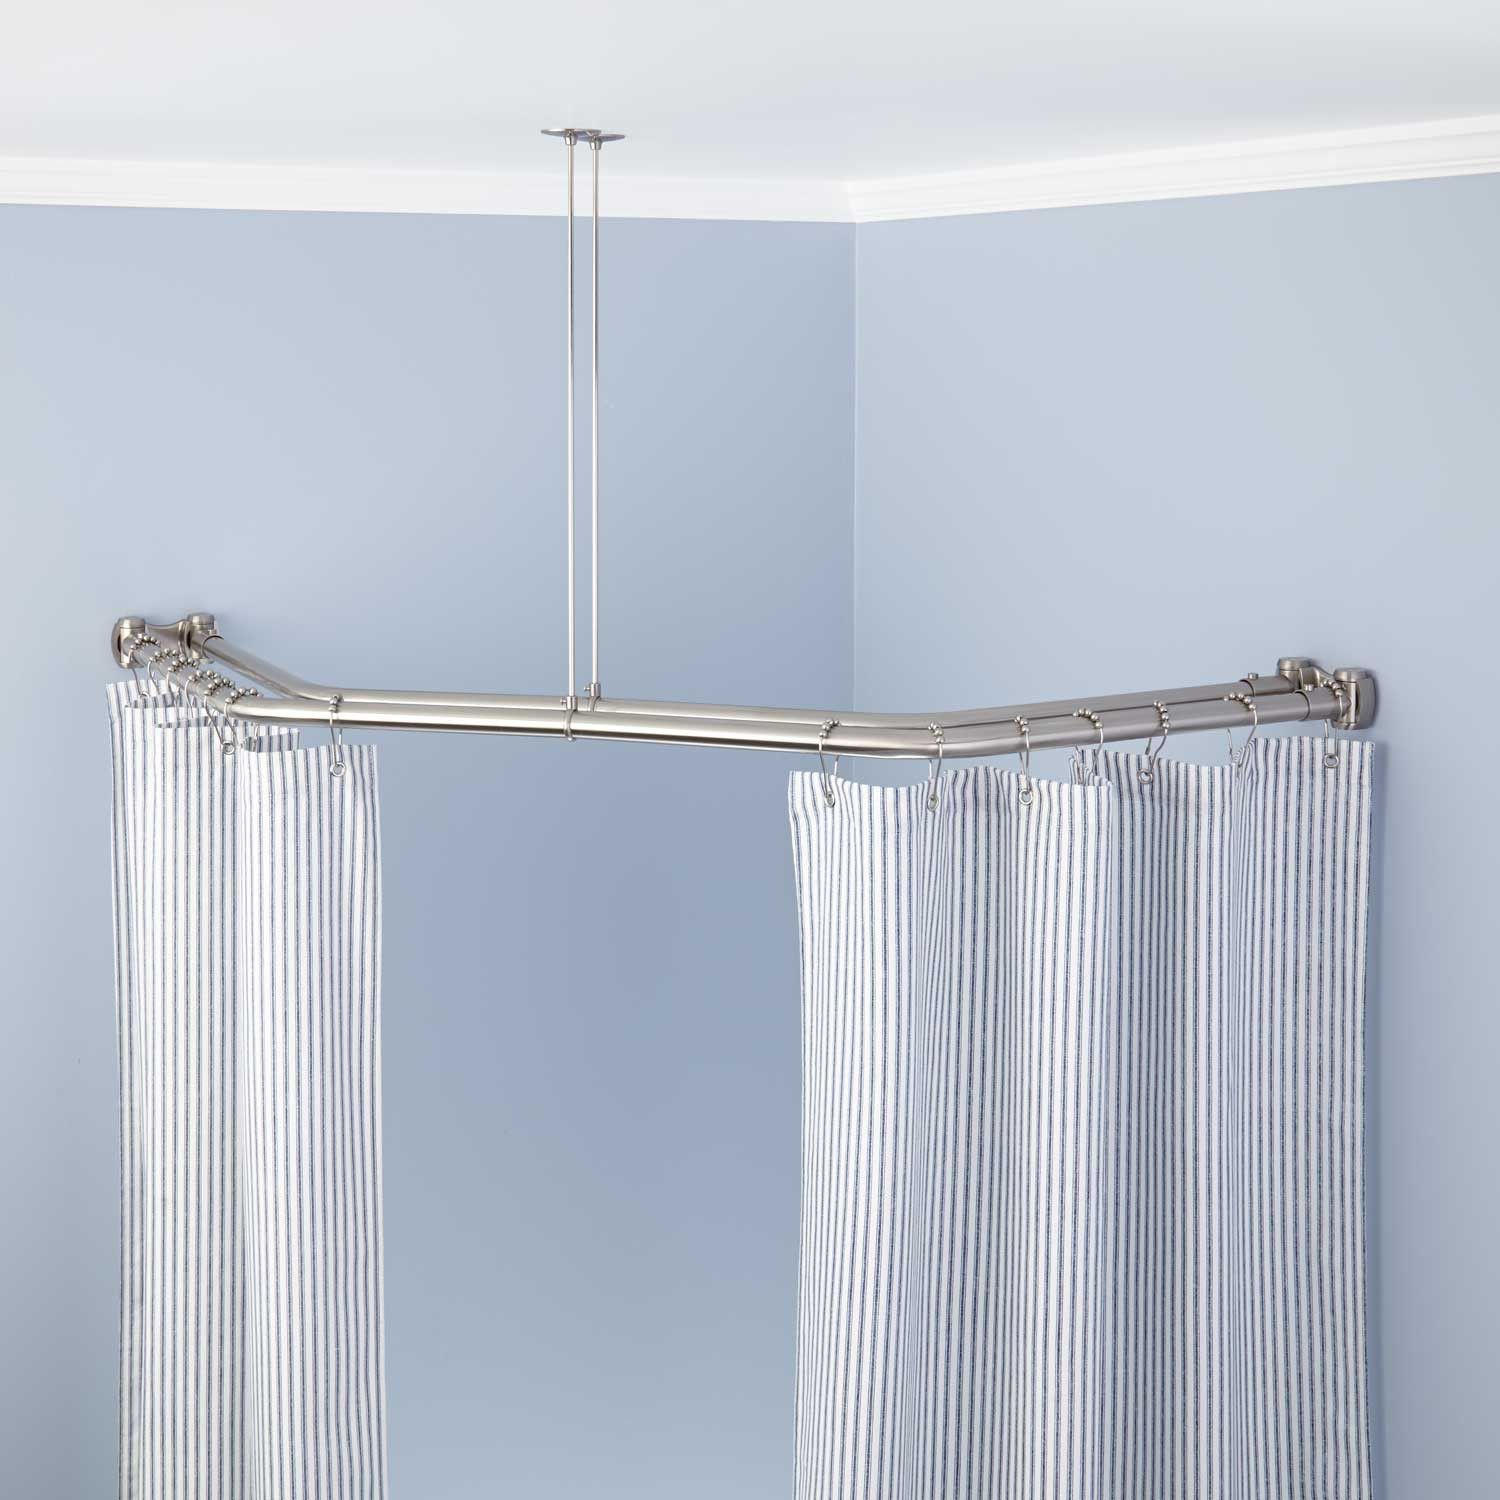 Neo Angle Double Solid Brass Shower Curtain Rod Bathroom With